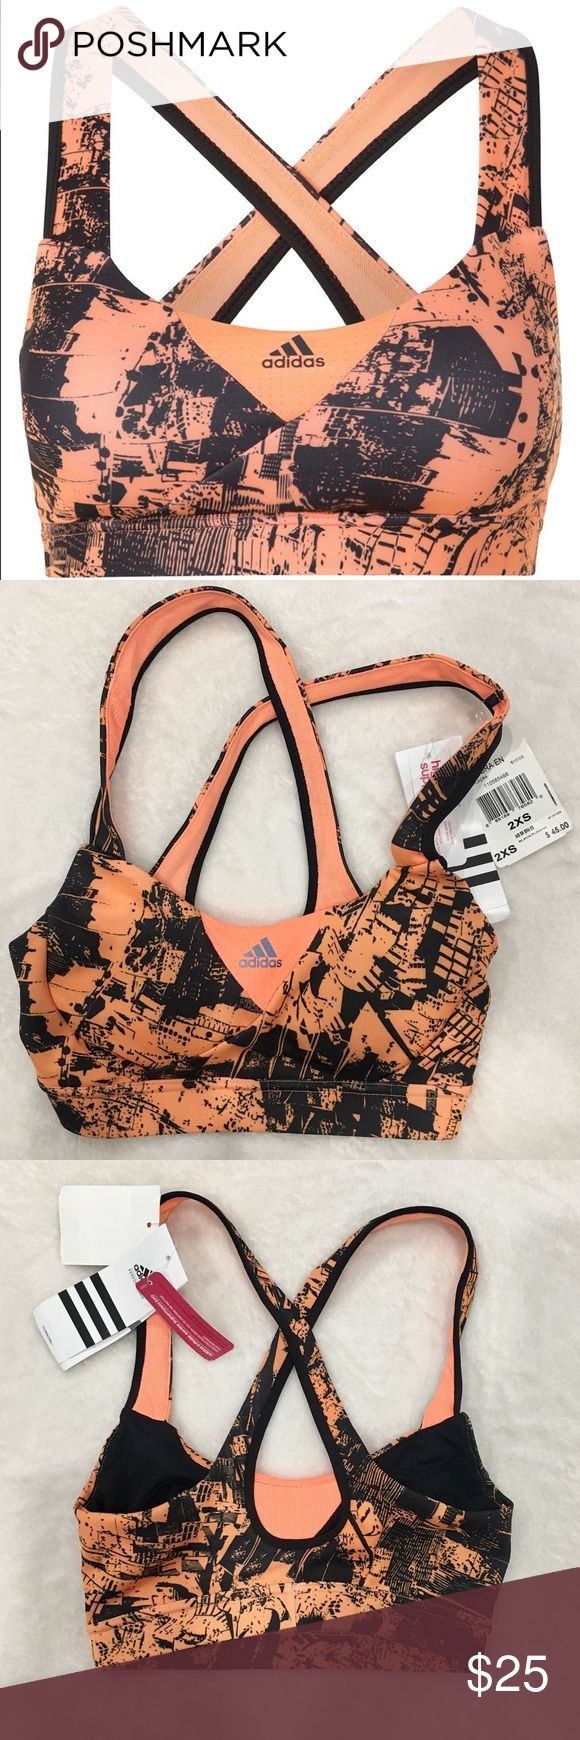 Adidas High Performance Sports Bra NWT. Black and orange design. So cute with all black leggings or bike shorts. This bra is XXS. It is very small. Great for the very petite gal or even a nice gift for your teen daughter! I'm sad I cannot fit it but happy to sell! adidas Intimates & Sleepwear Bras